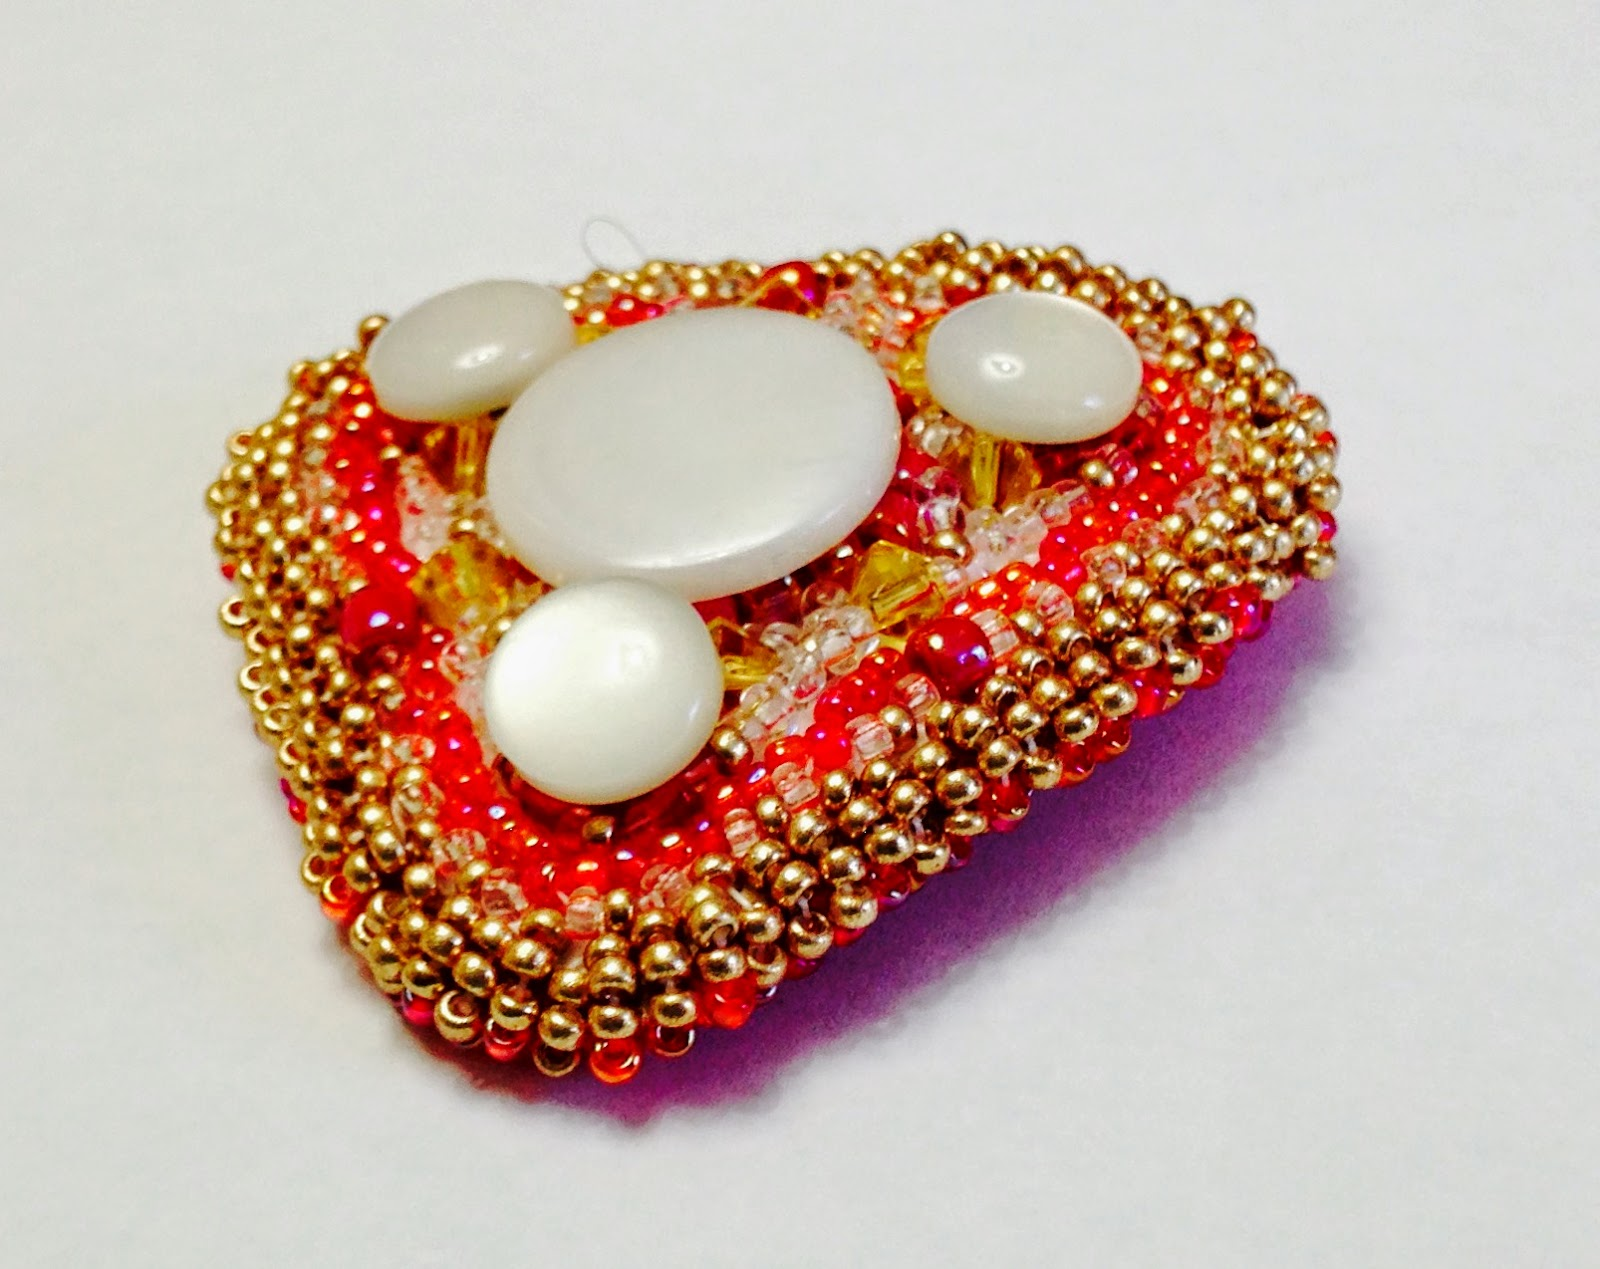 4 Button Etsy Brooch Listing